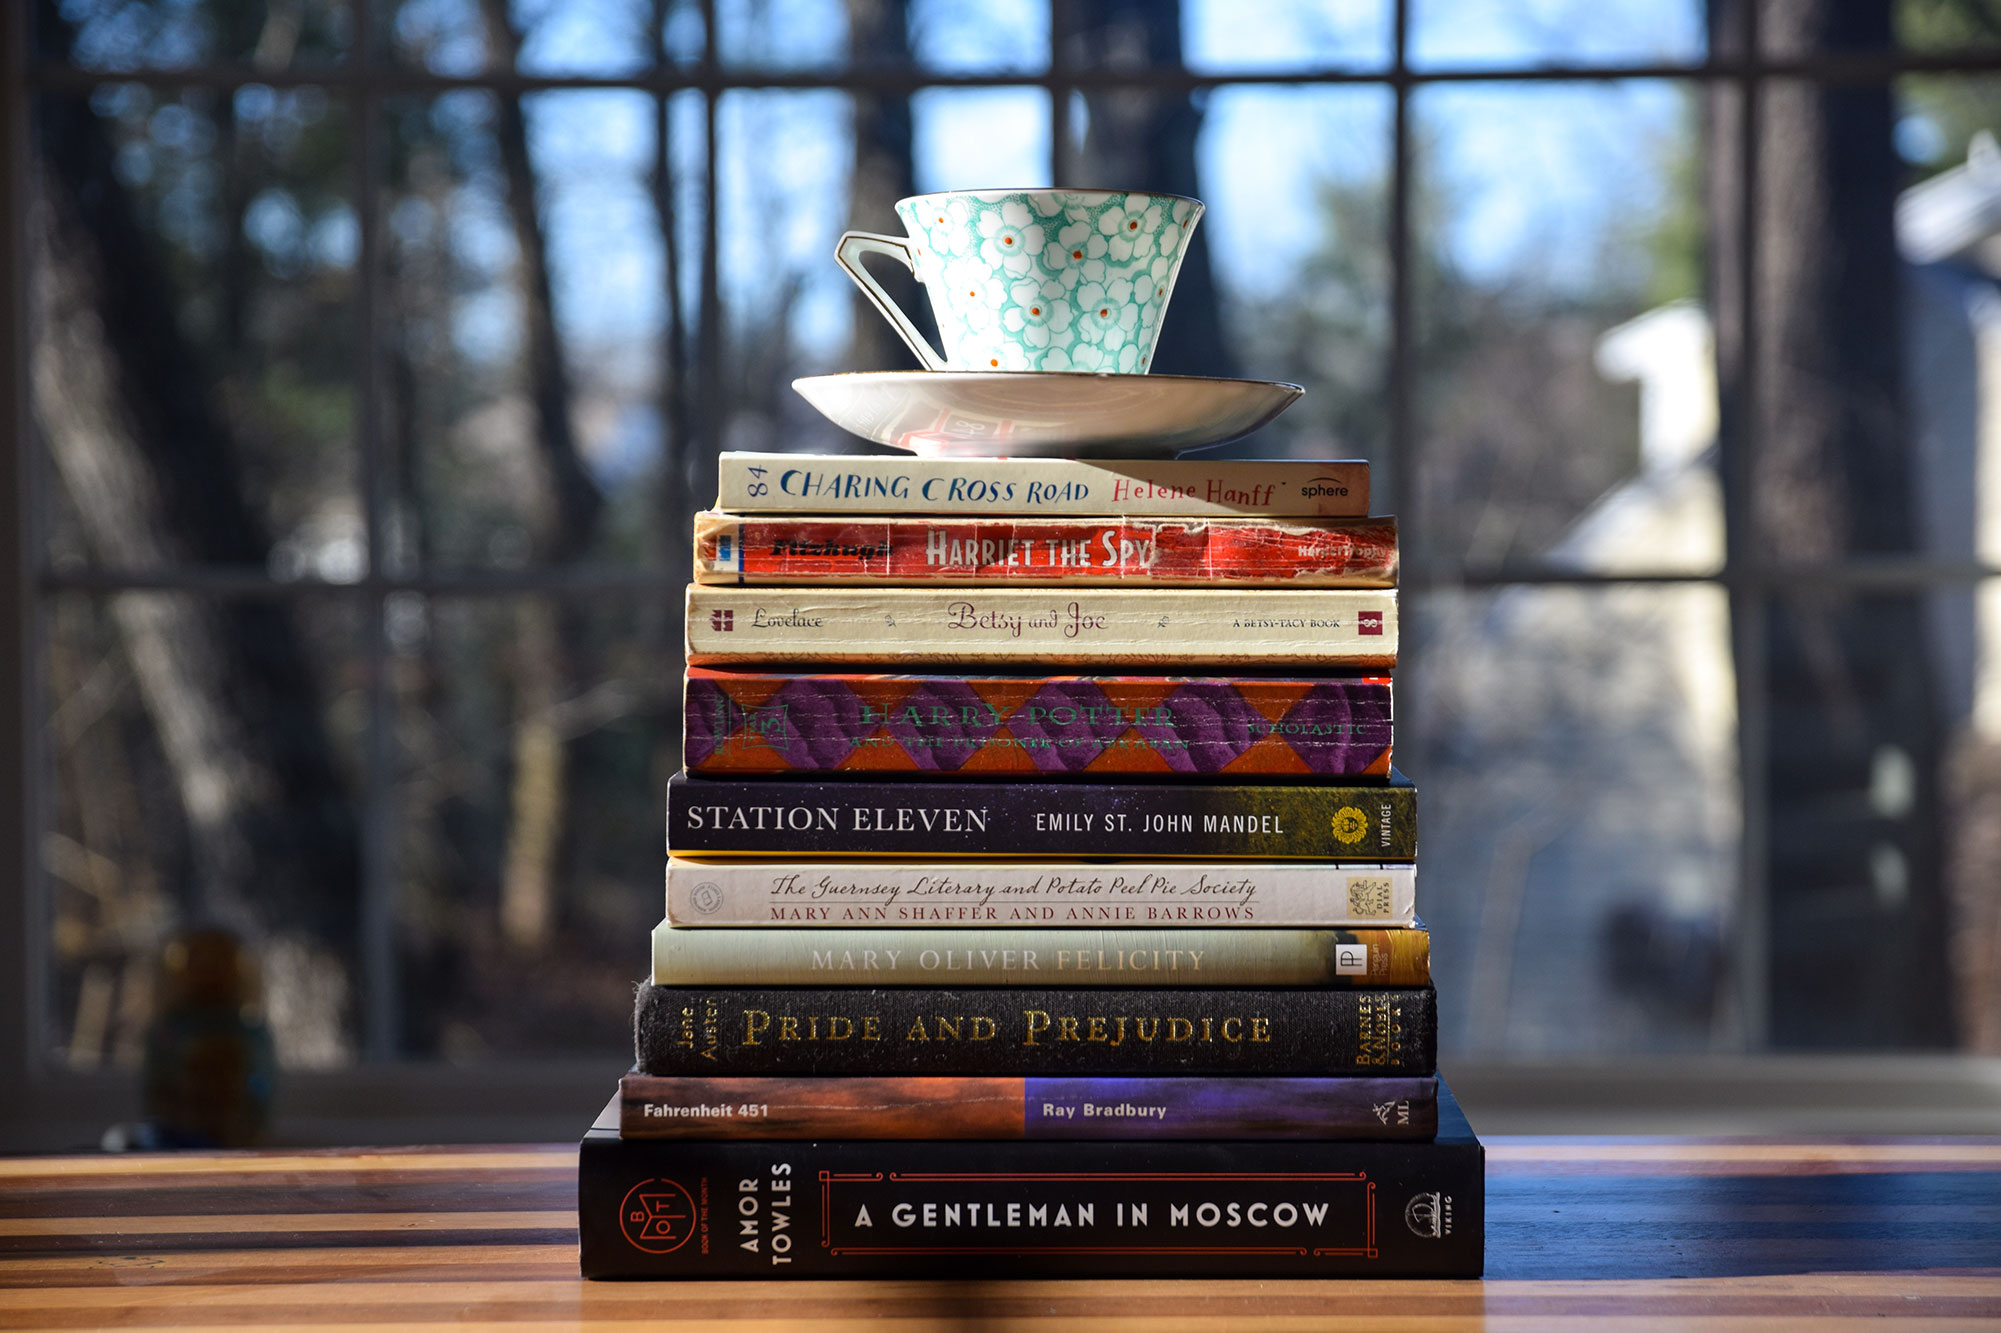 My Book Stack Me Challenge